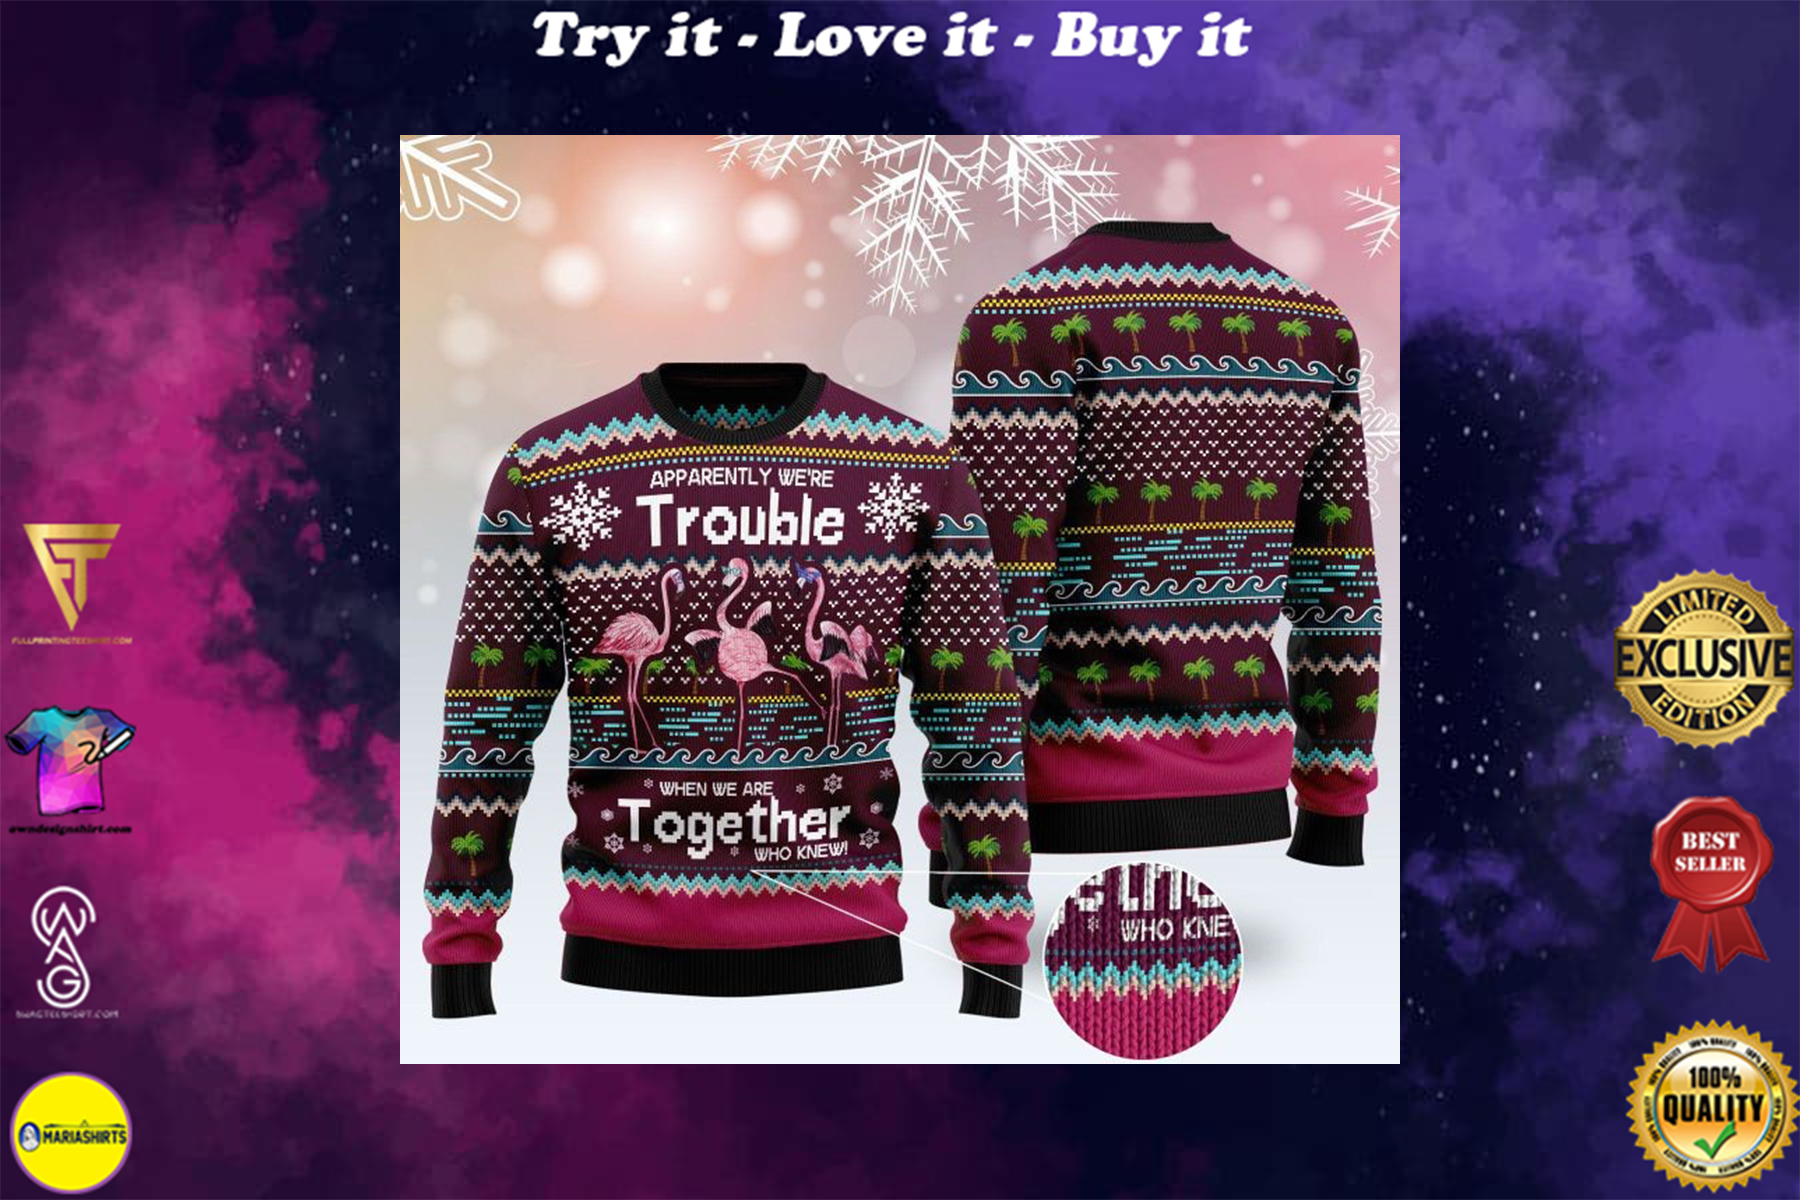 [special edition] apparently were trouble when we are together who knew ugly sweater - maria